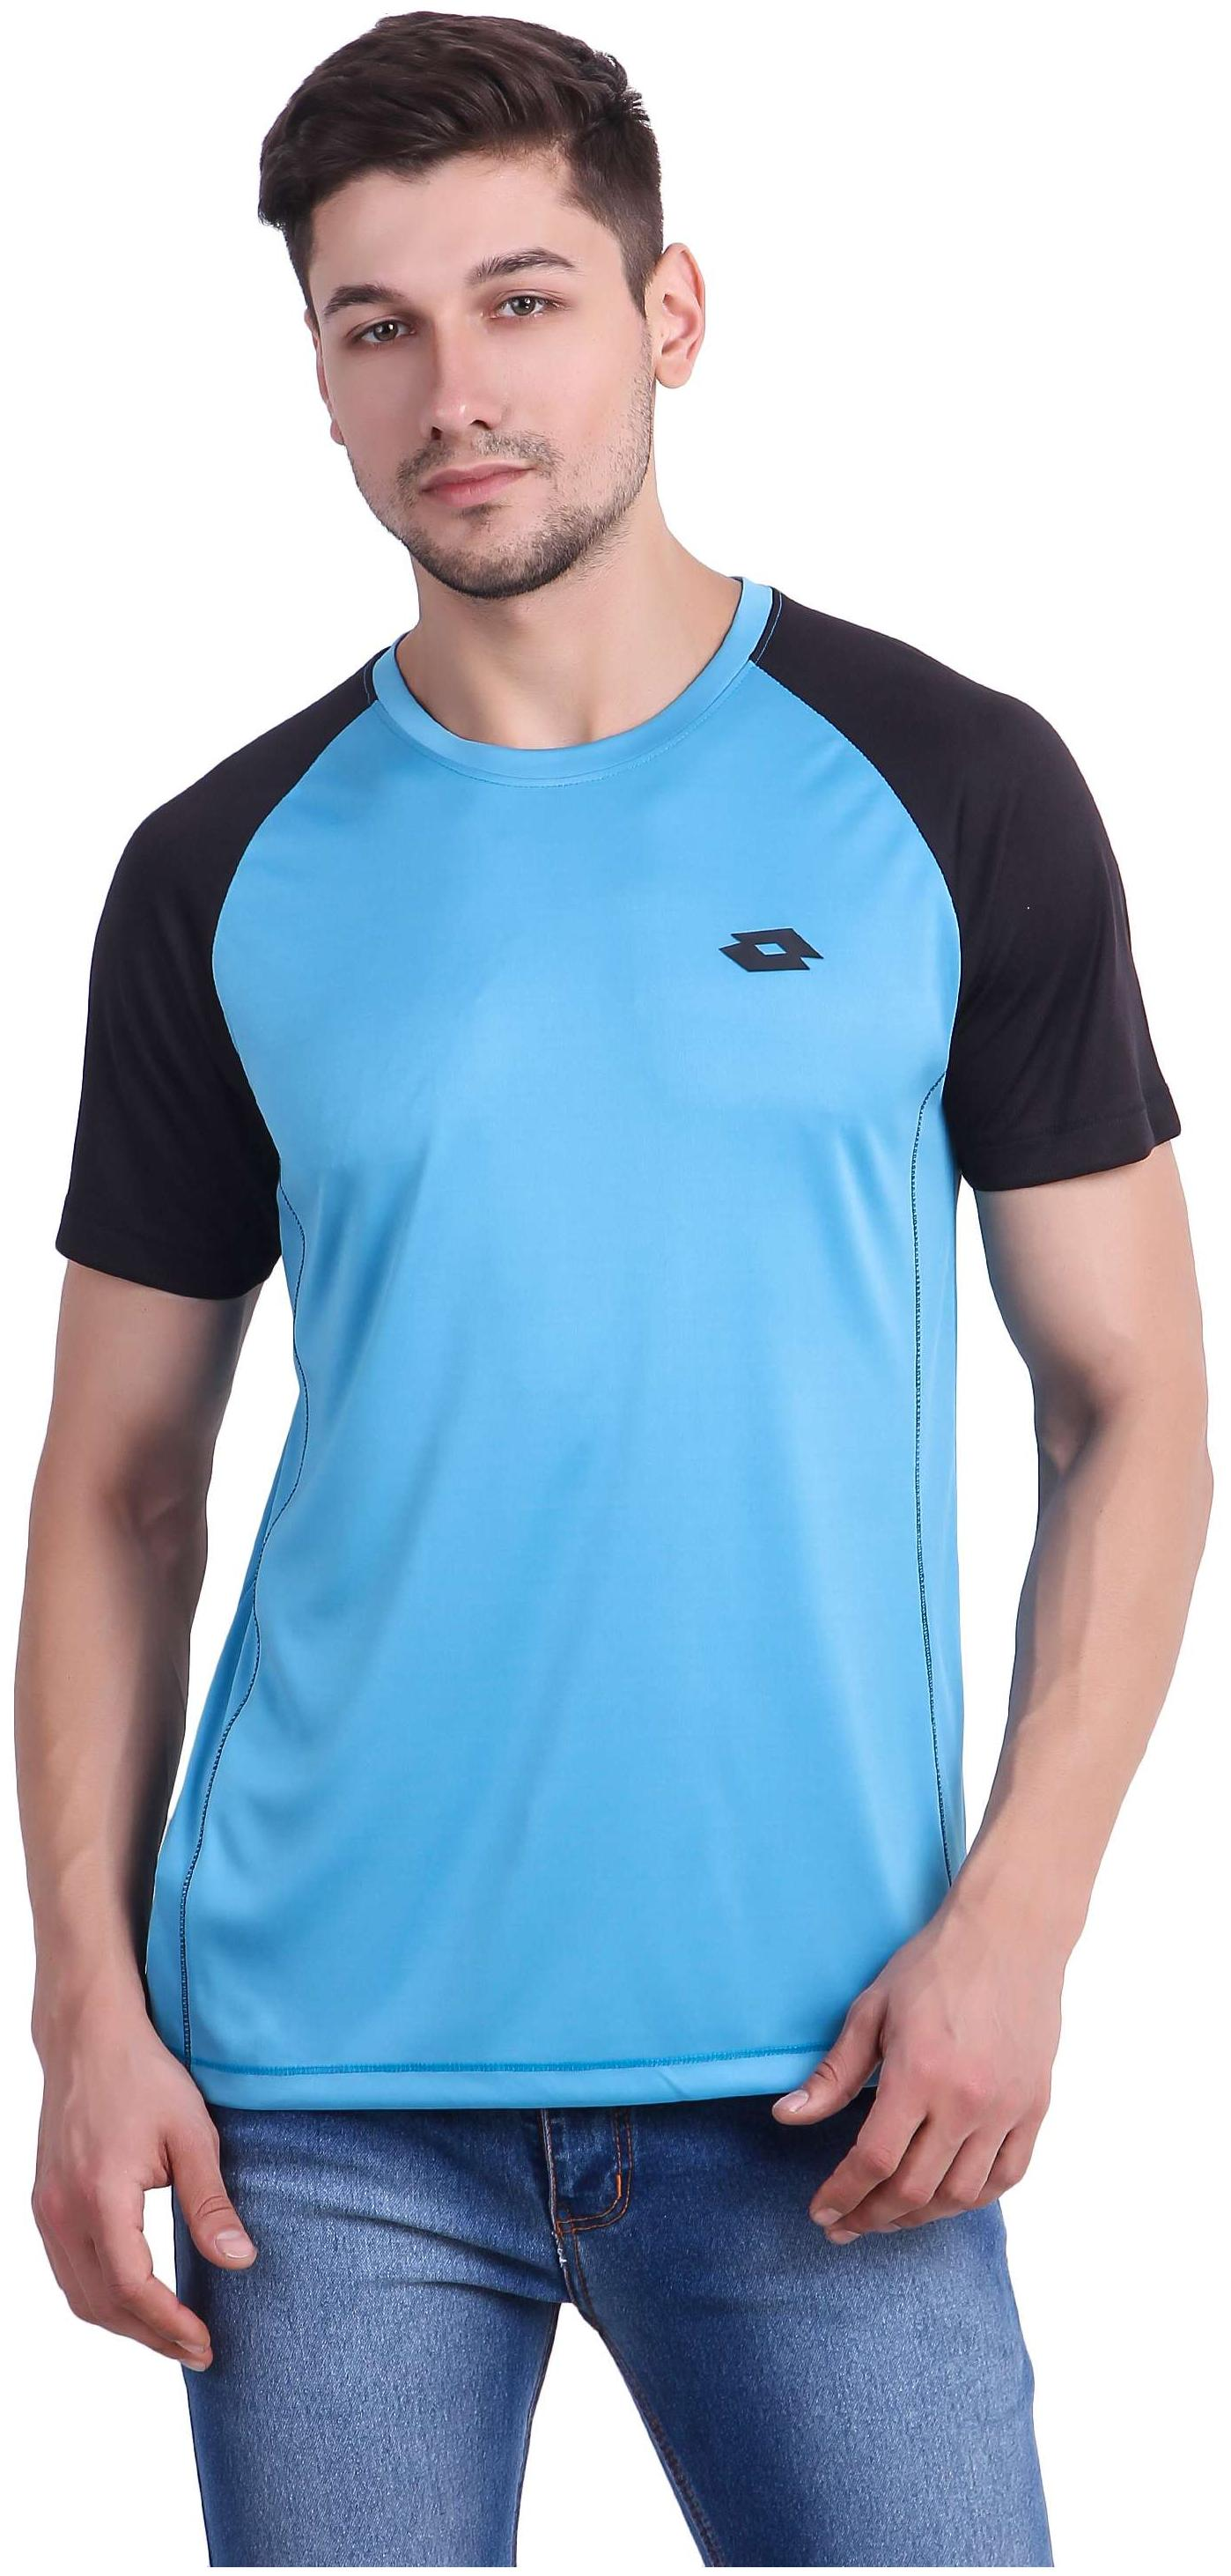 https://assetscdn1.paytm.com/images/catalog/product/A/AP/APPLOTTO-MEN-ROCORA436627F529C90E/0.jpg